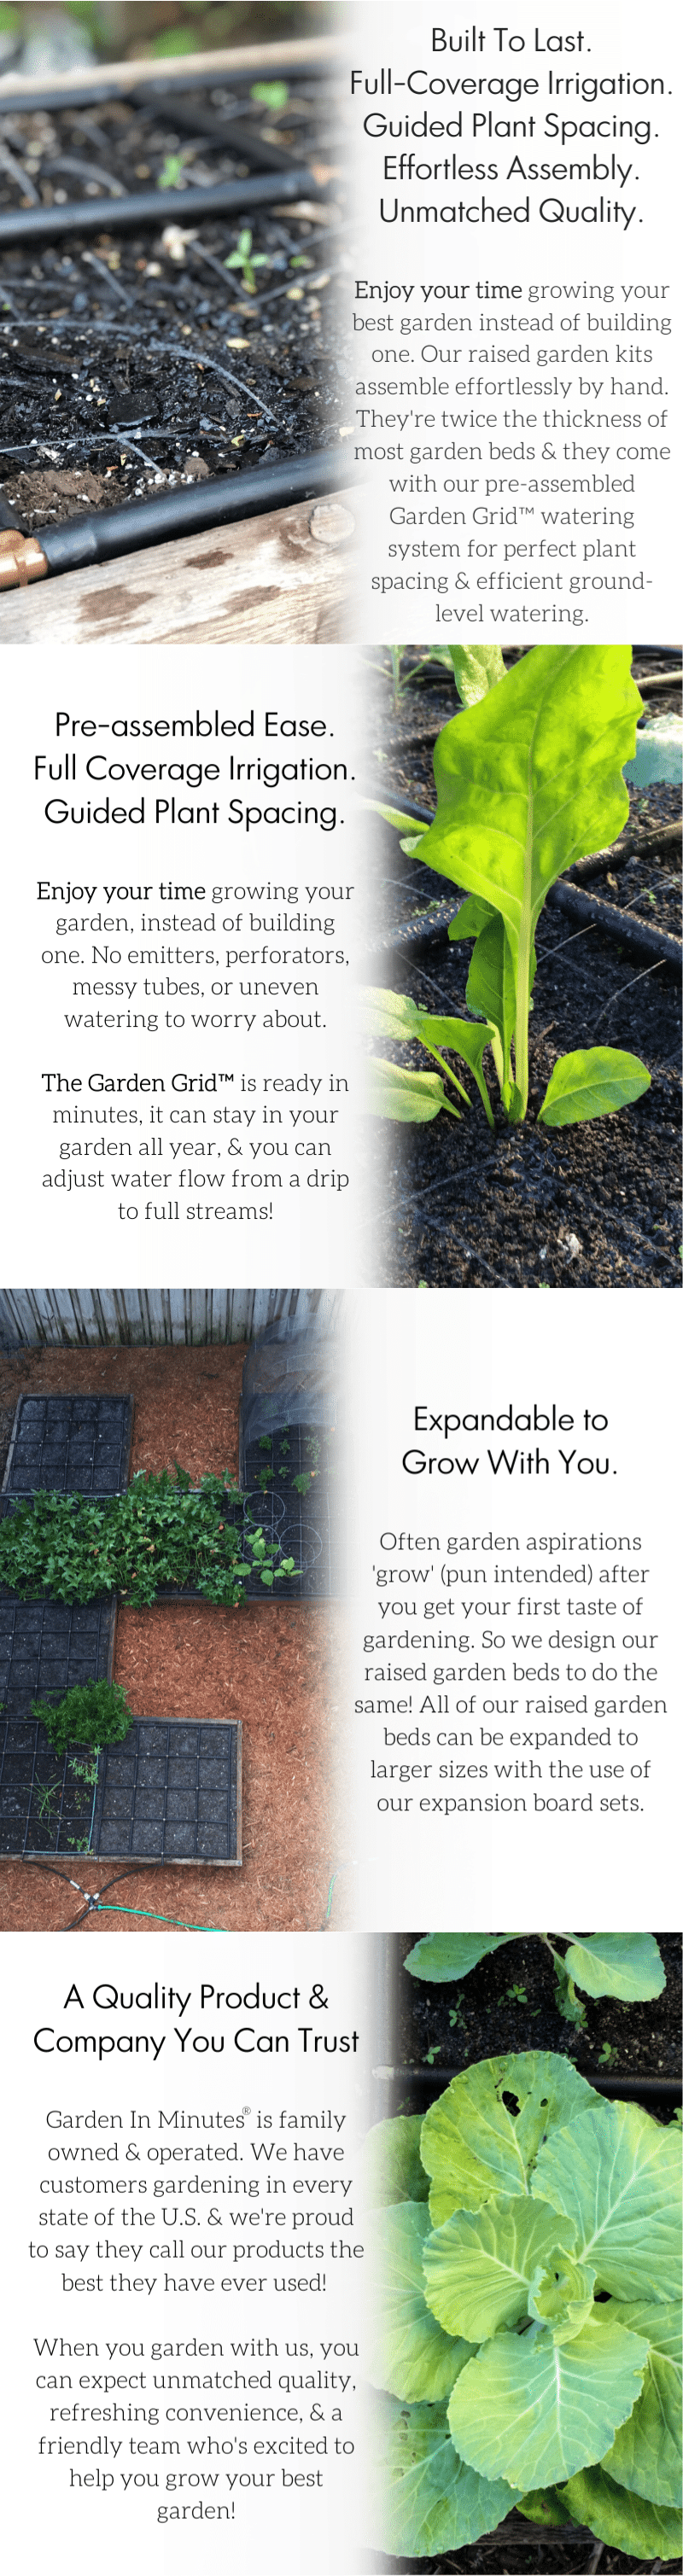 raised garden bed kit with Garden Grid watering systems